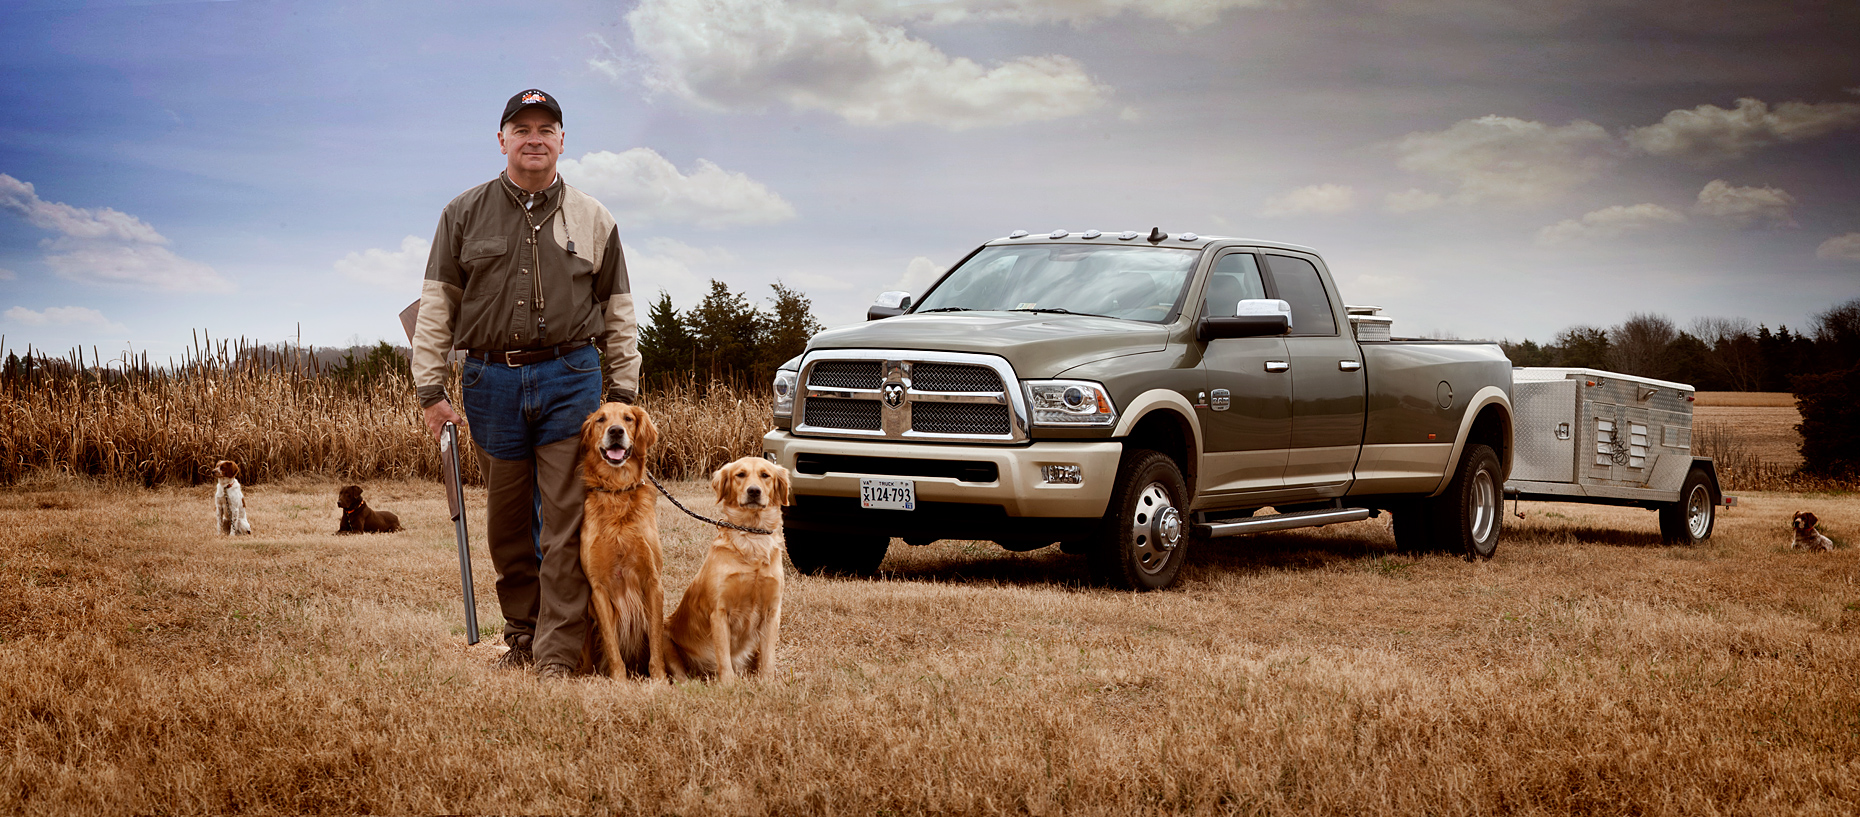 ©Robb Scharetg - H.Jaekle with his hunting champion dogs .  DC photographer , SF photograper